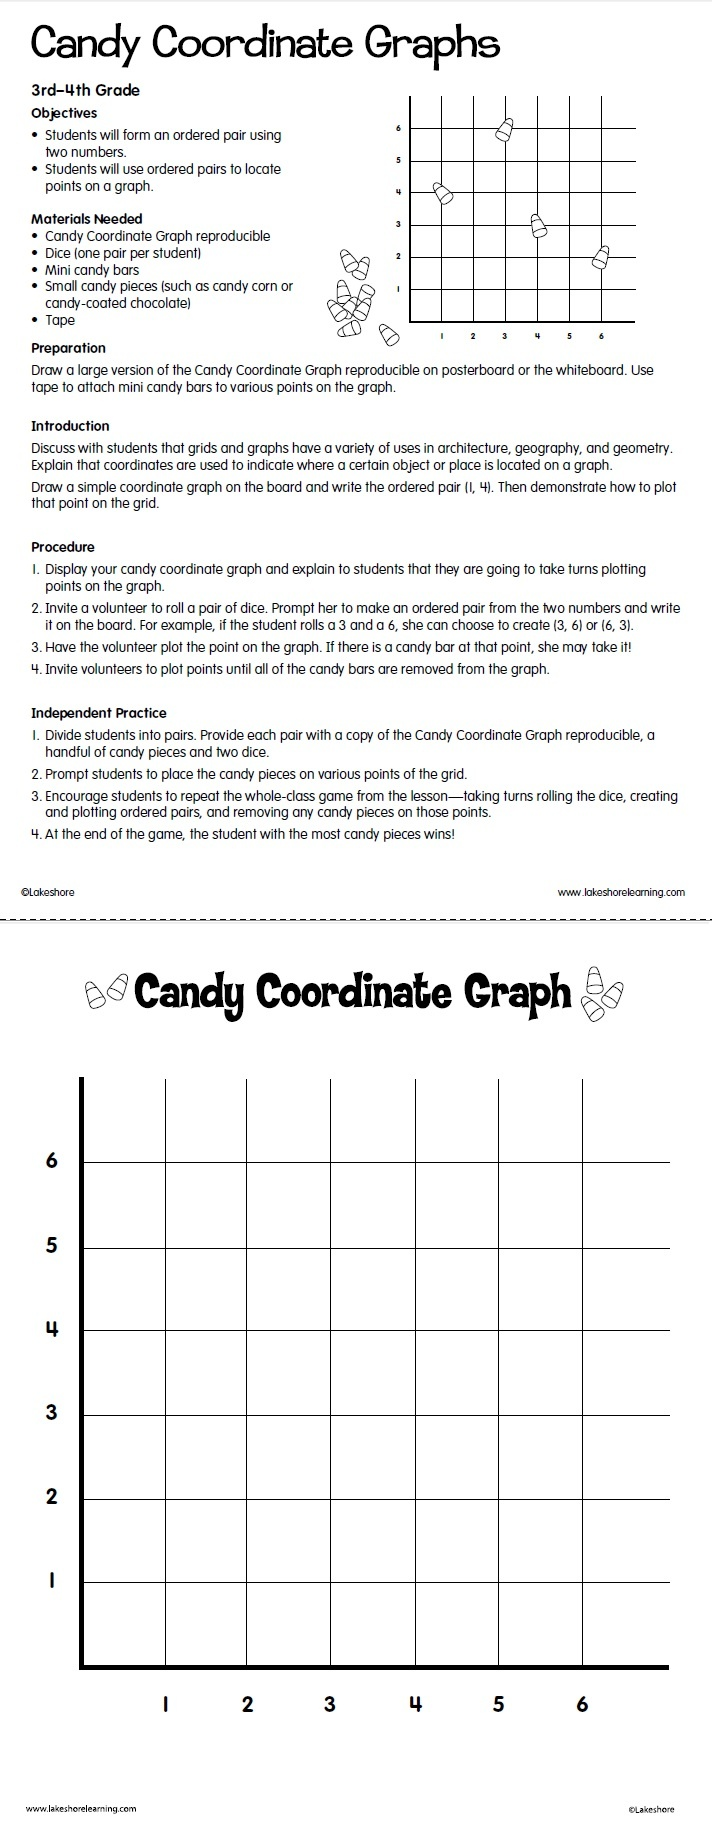 worksheet Chocolate Fever Worksheets 1000 images about chocolate on pinterest thinking skills candy coordinate graphs lesson plan freebie